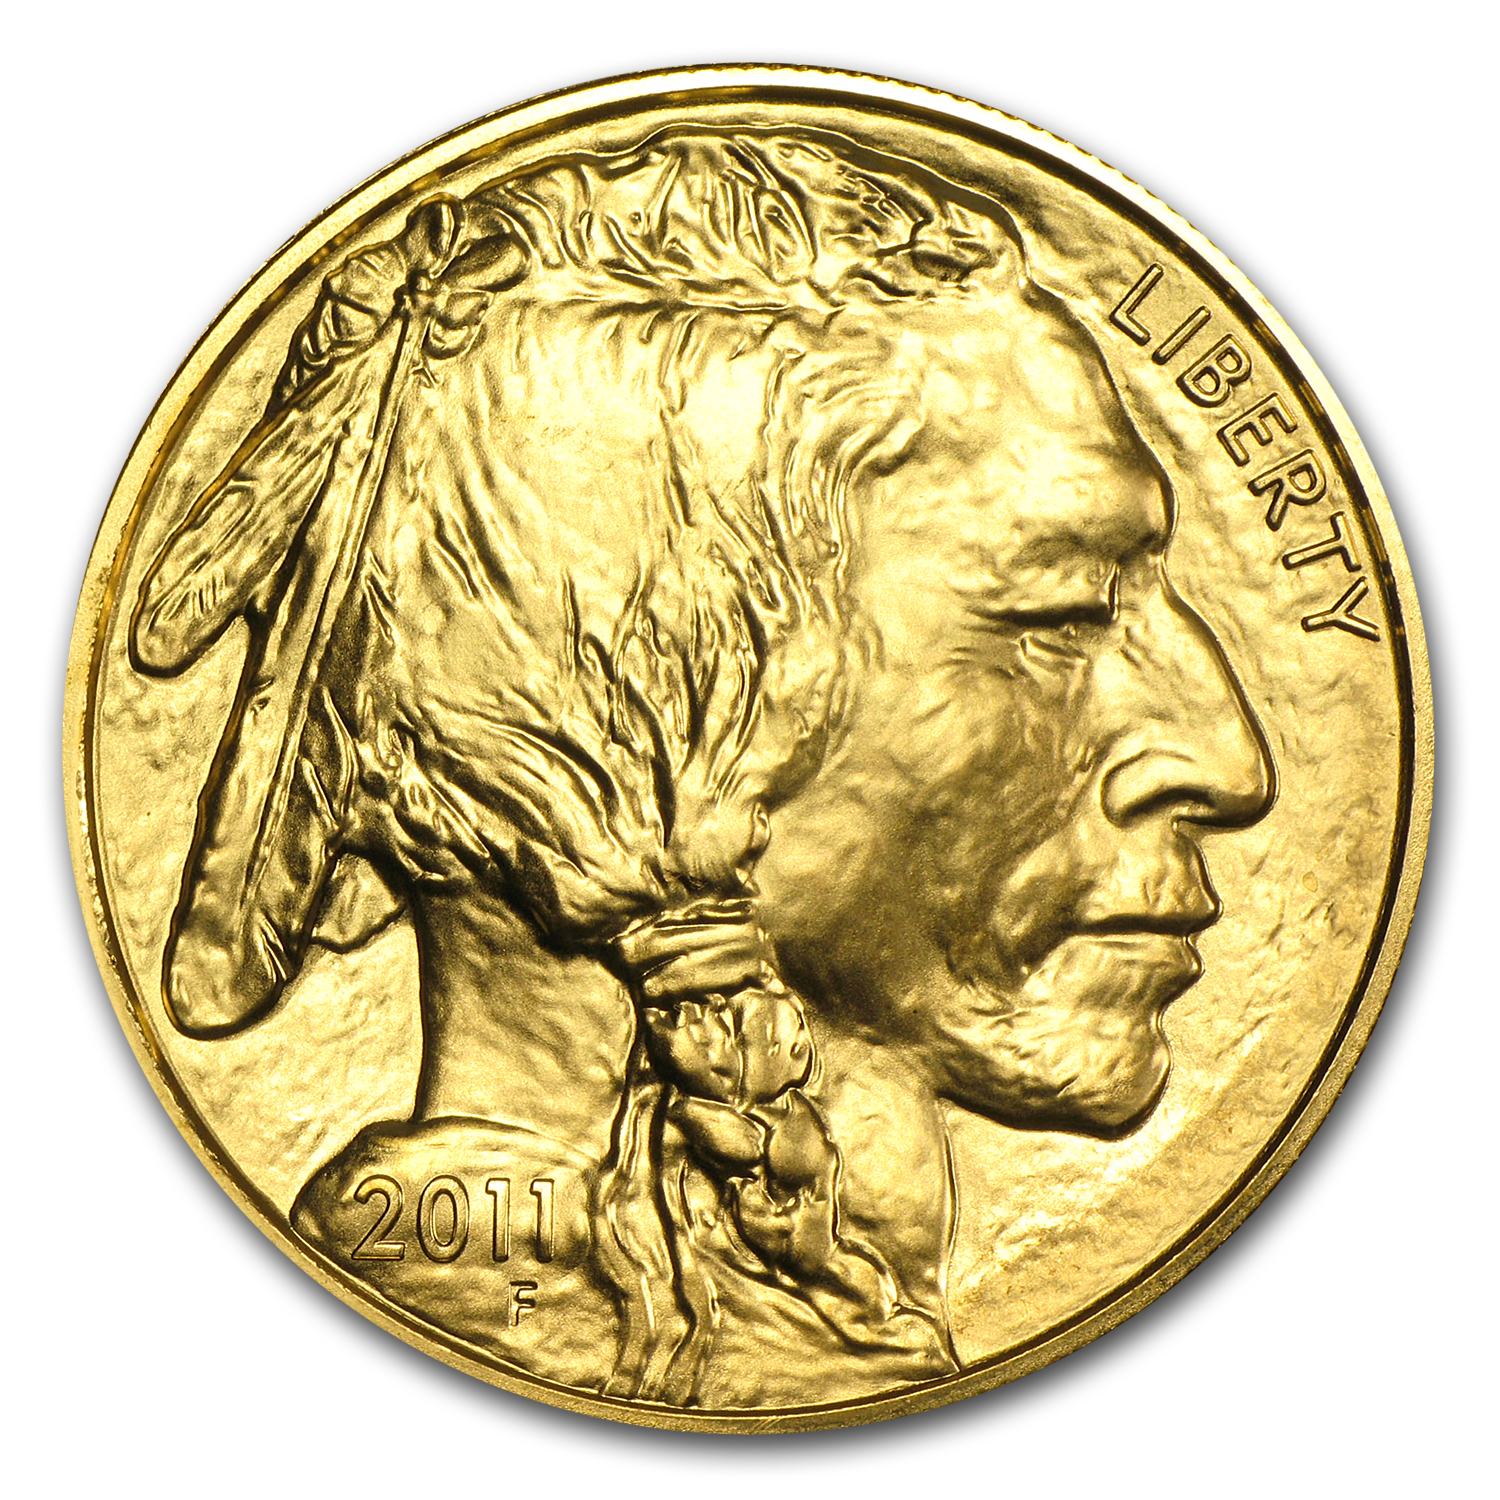 2011 1 oz Gold Buffalo BU